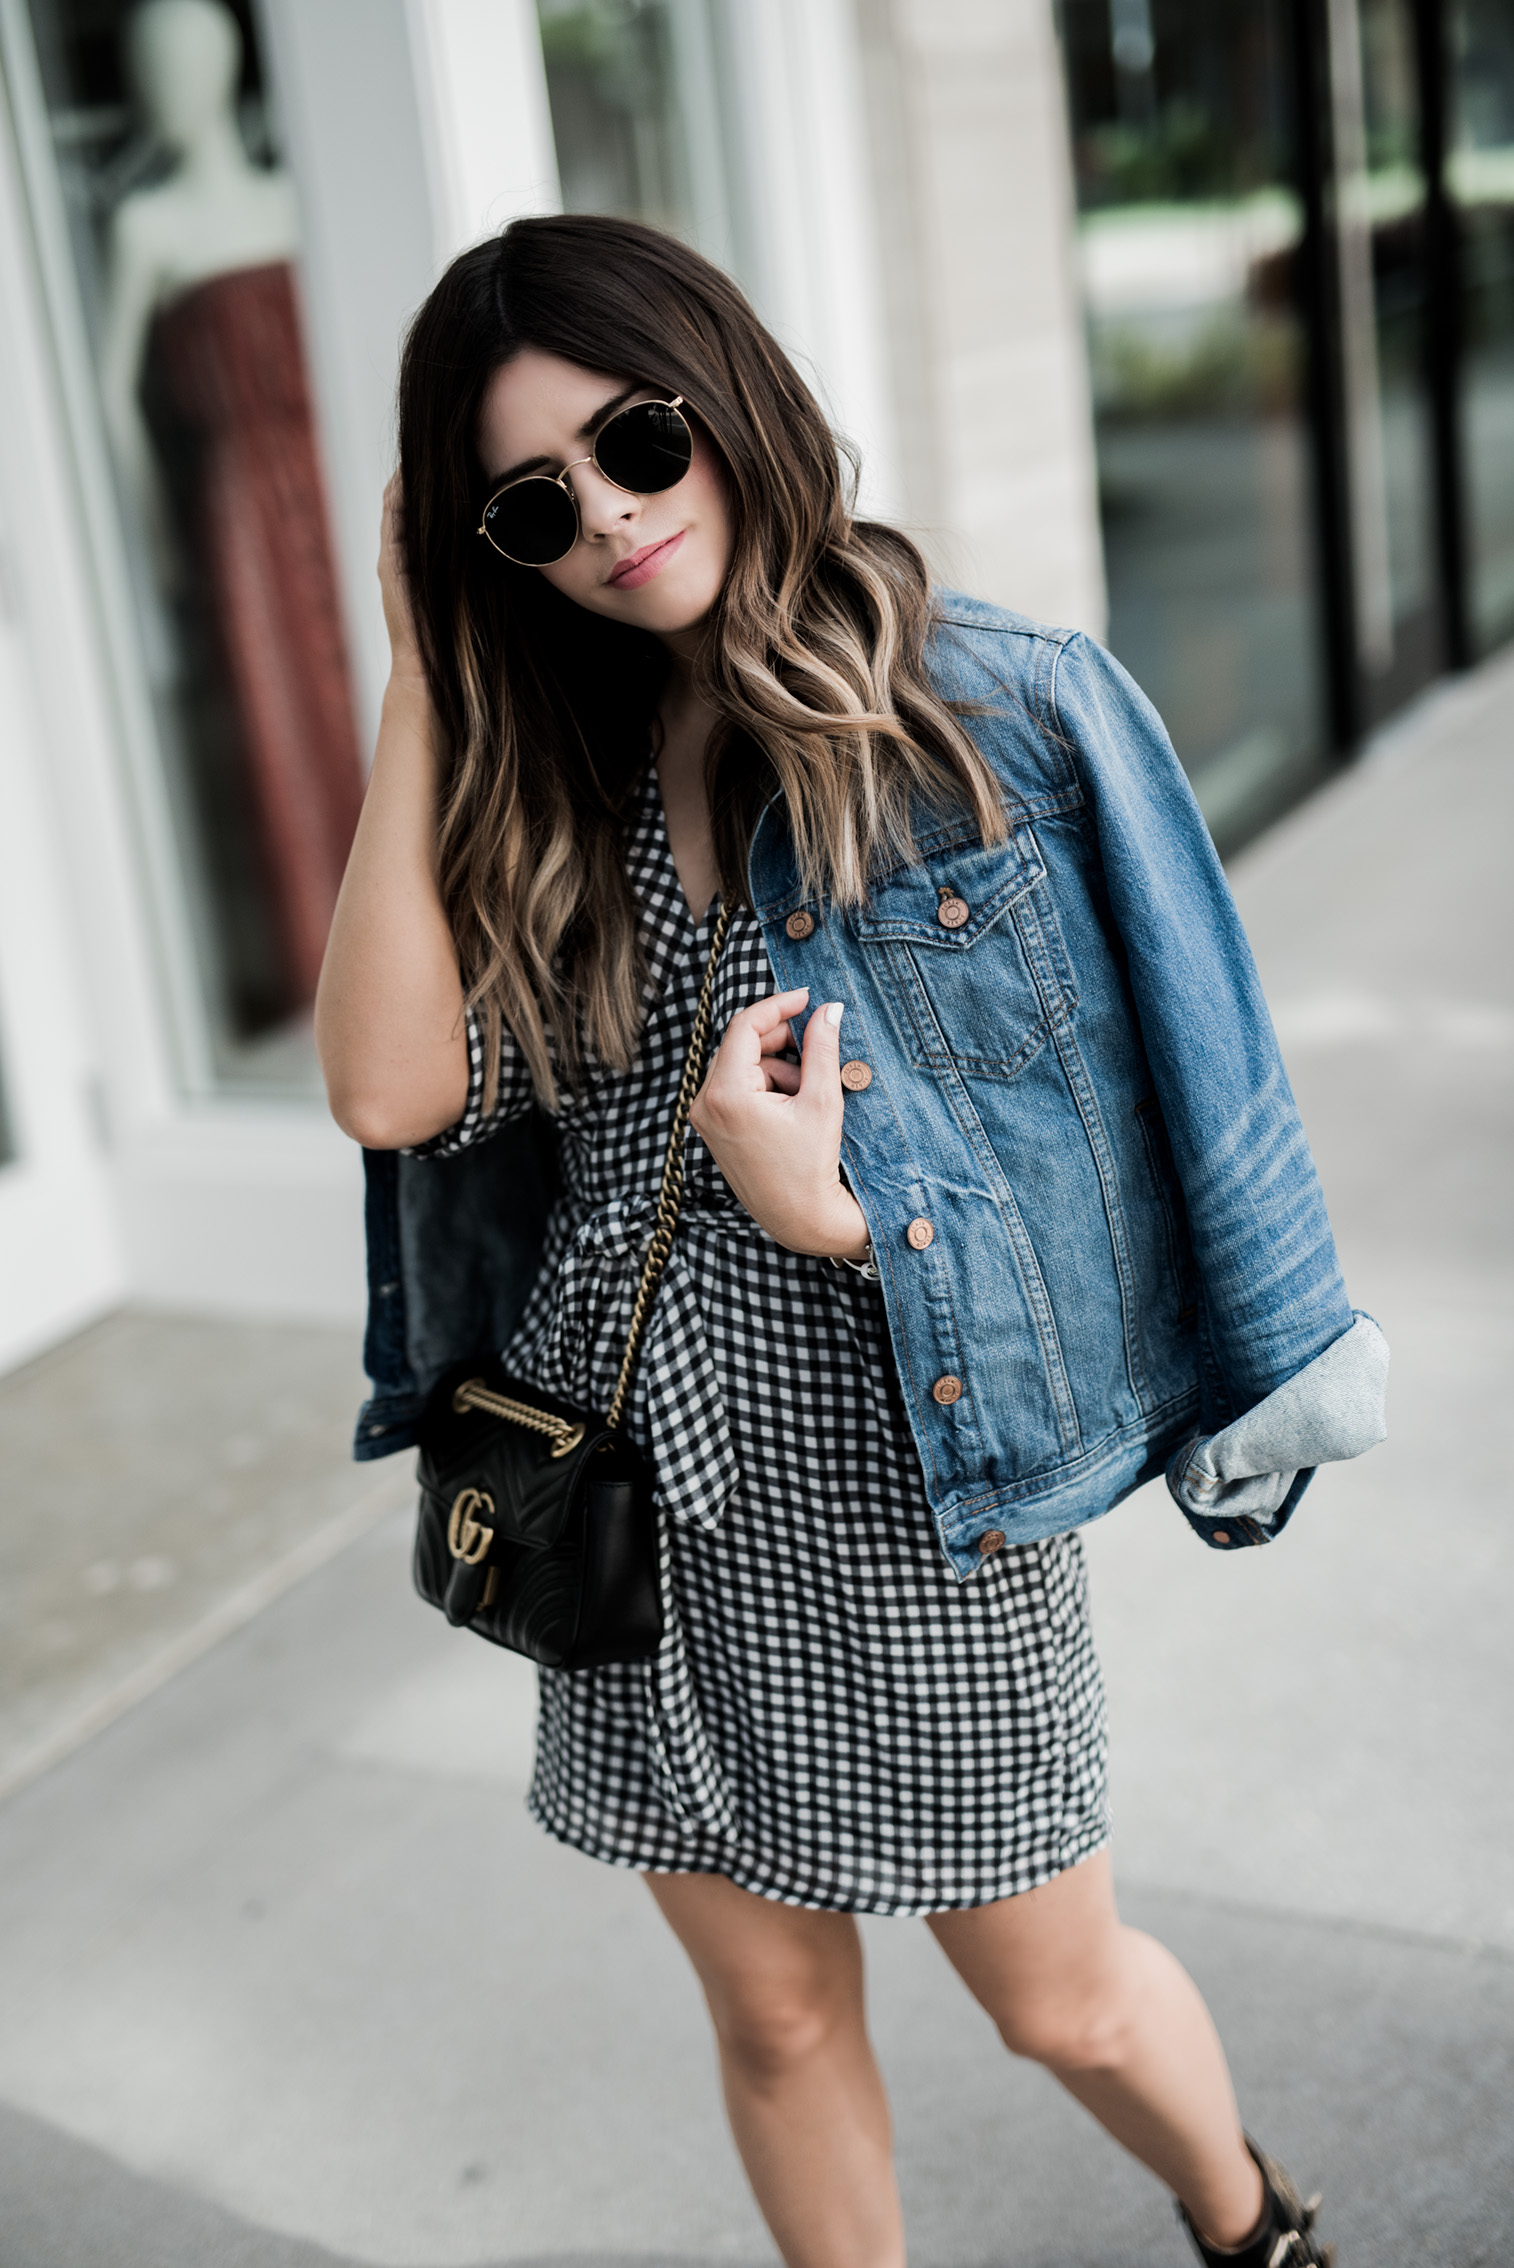 Tiffany Jais Houston fashion and lifestyle blogger | 14 Gingham items you need in your closet | Chloe studded boots, Gucci Marmot outfits, casual outfit ideas, streetstyle